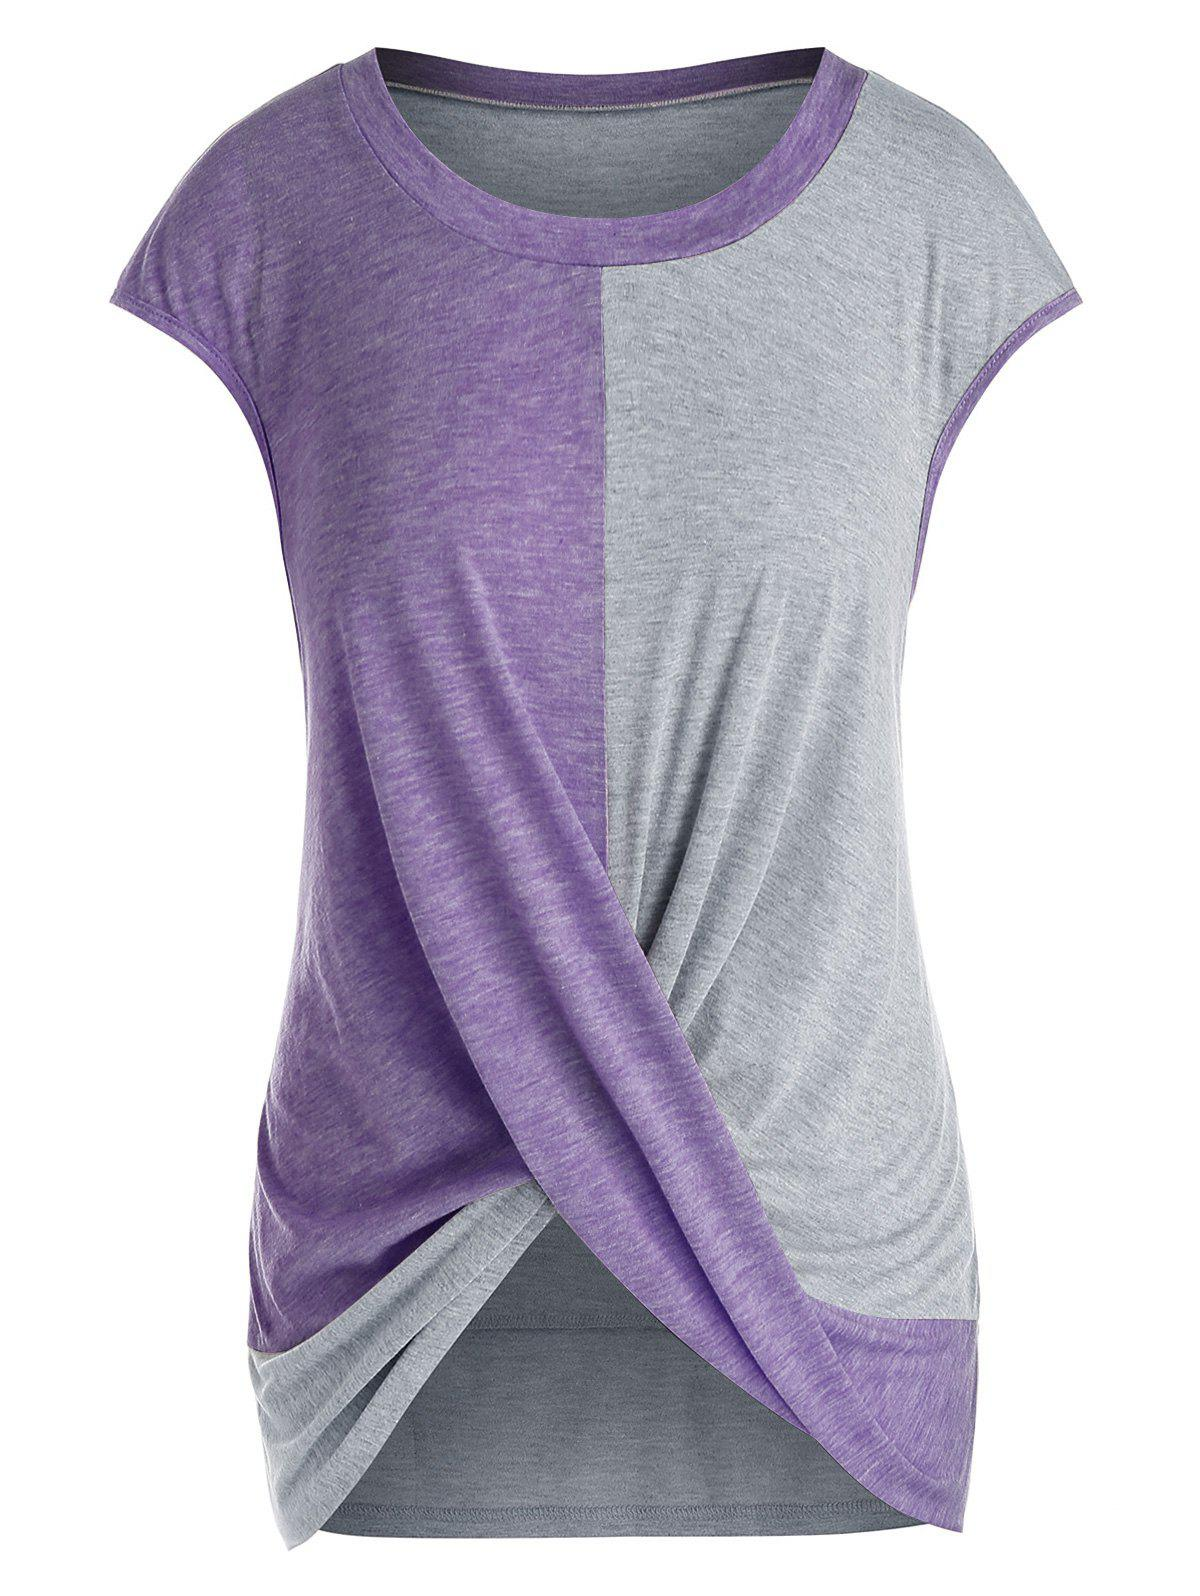 Plus Size Cap Sleeve Criss Cross T-shirt фото